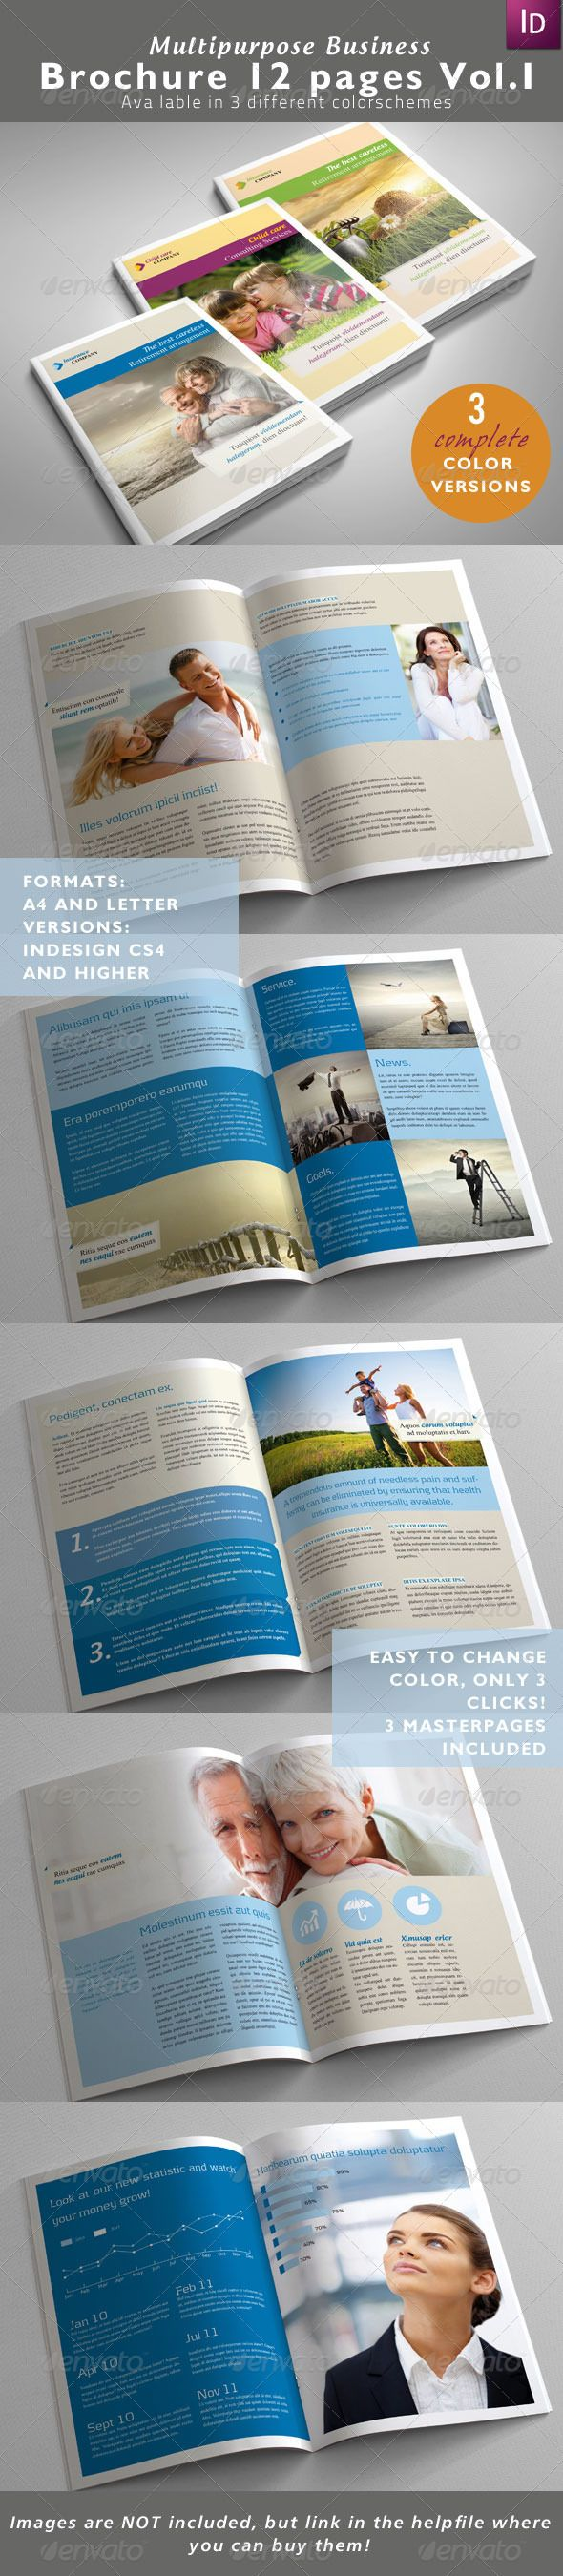 13 best InDesign Templates images on Pinterest | Indesign templates ...